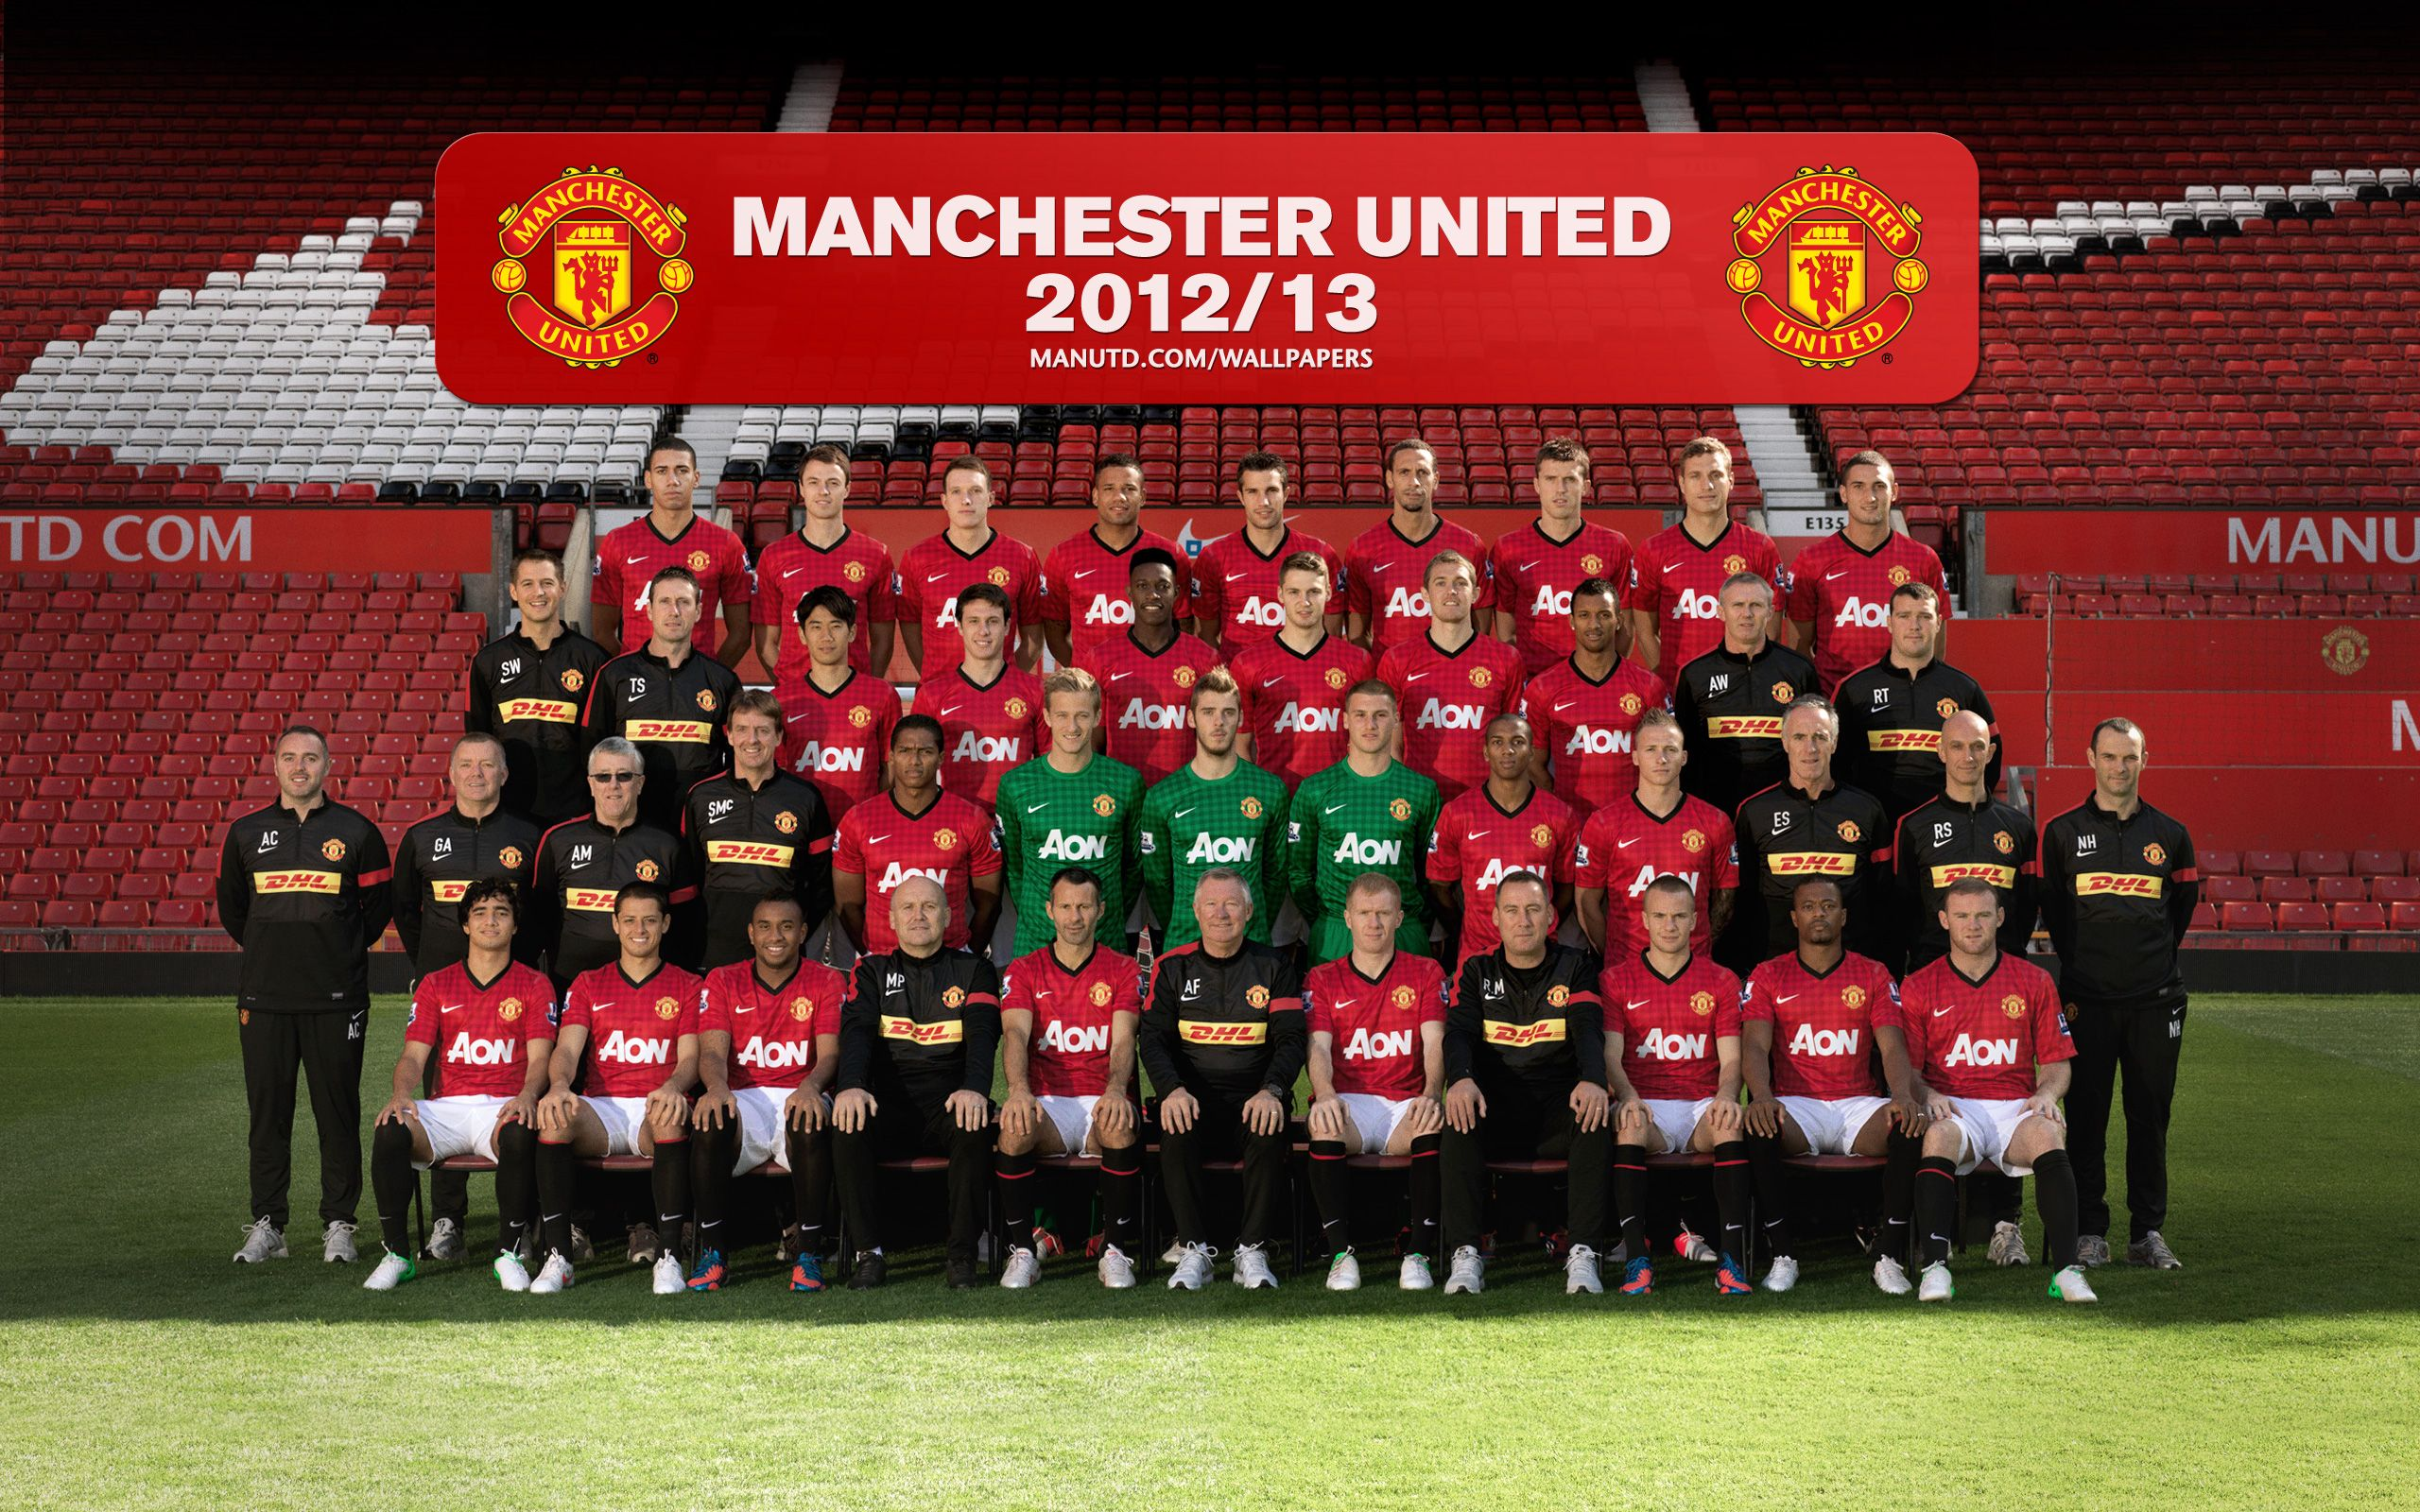 Our Squad Manchester United Team Manchester United Official Manchester United Website